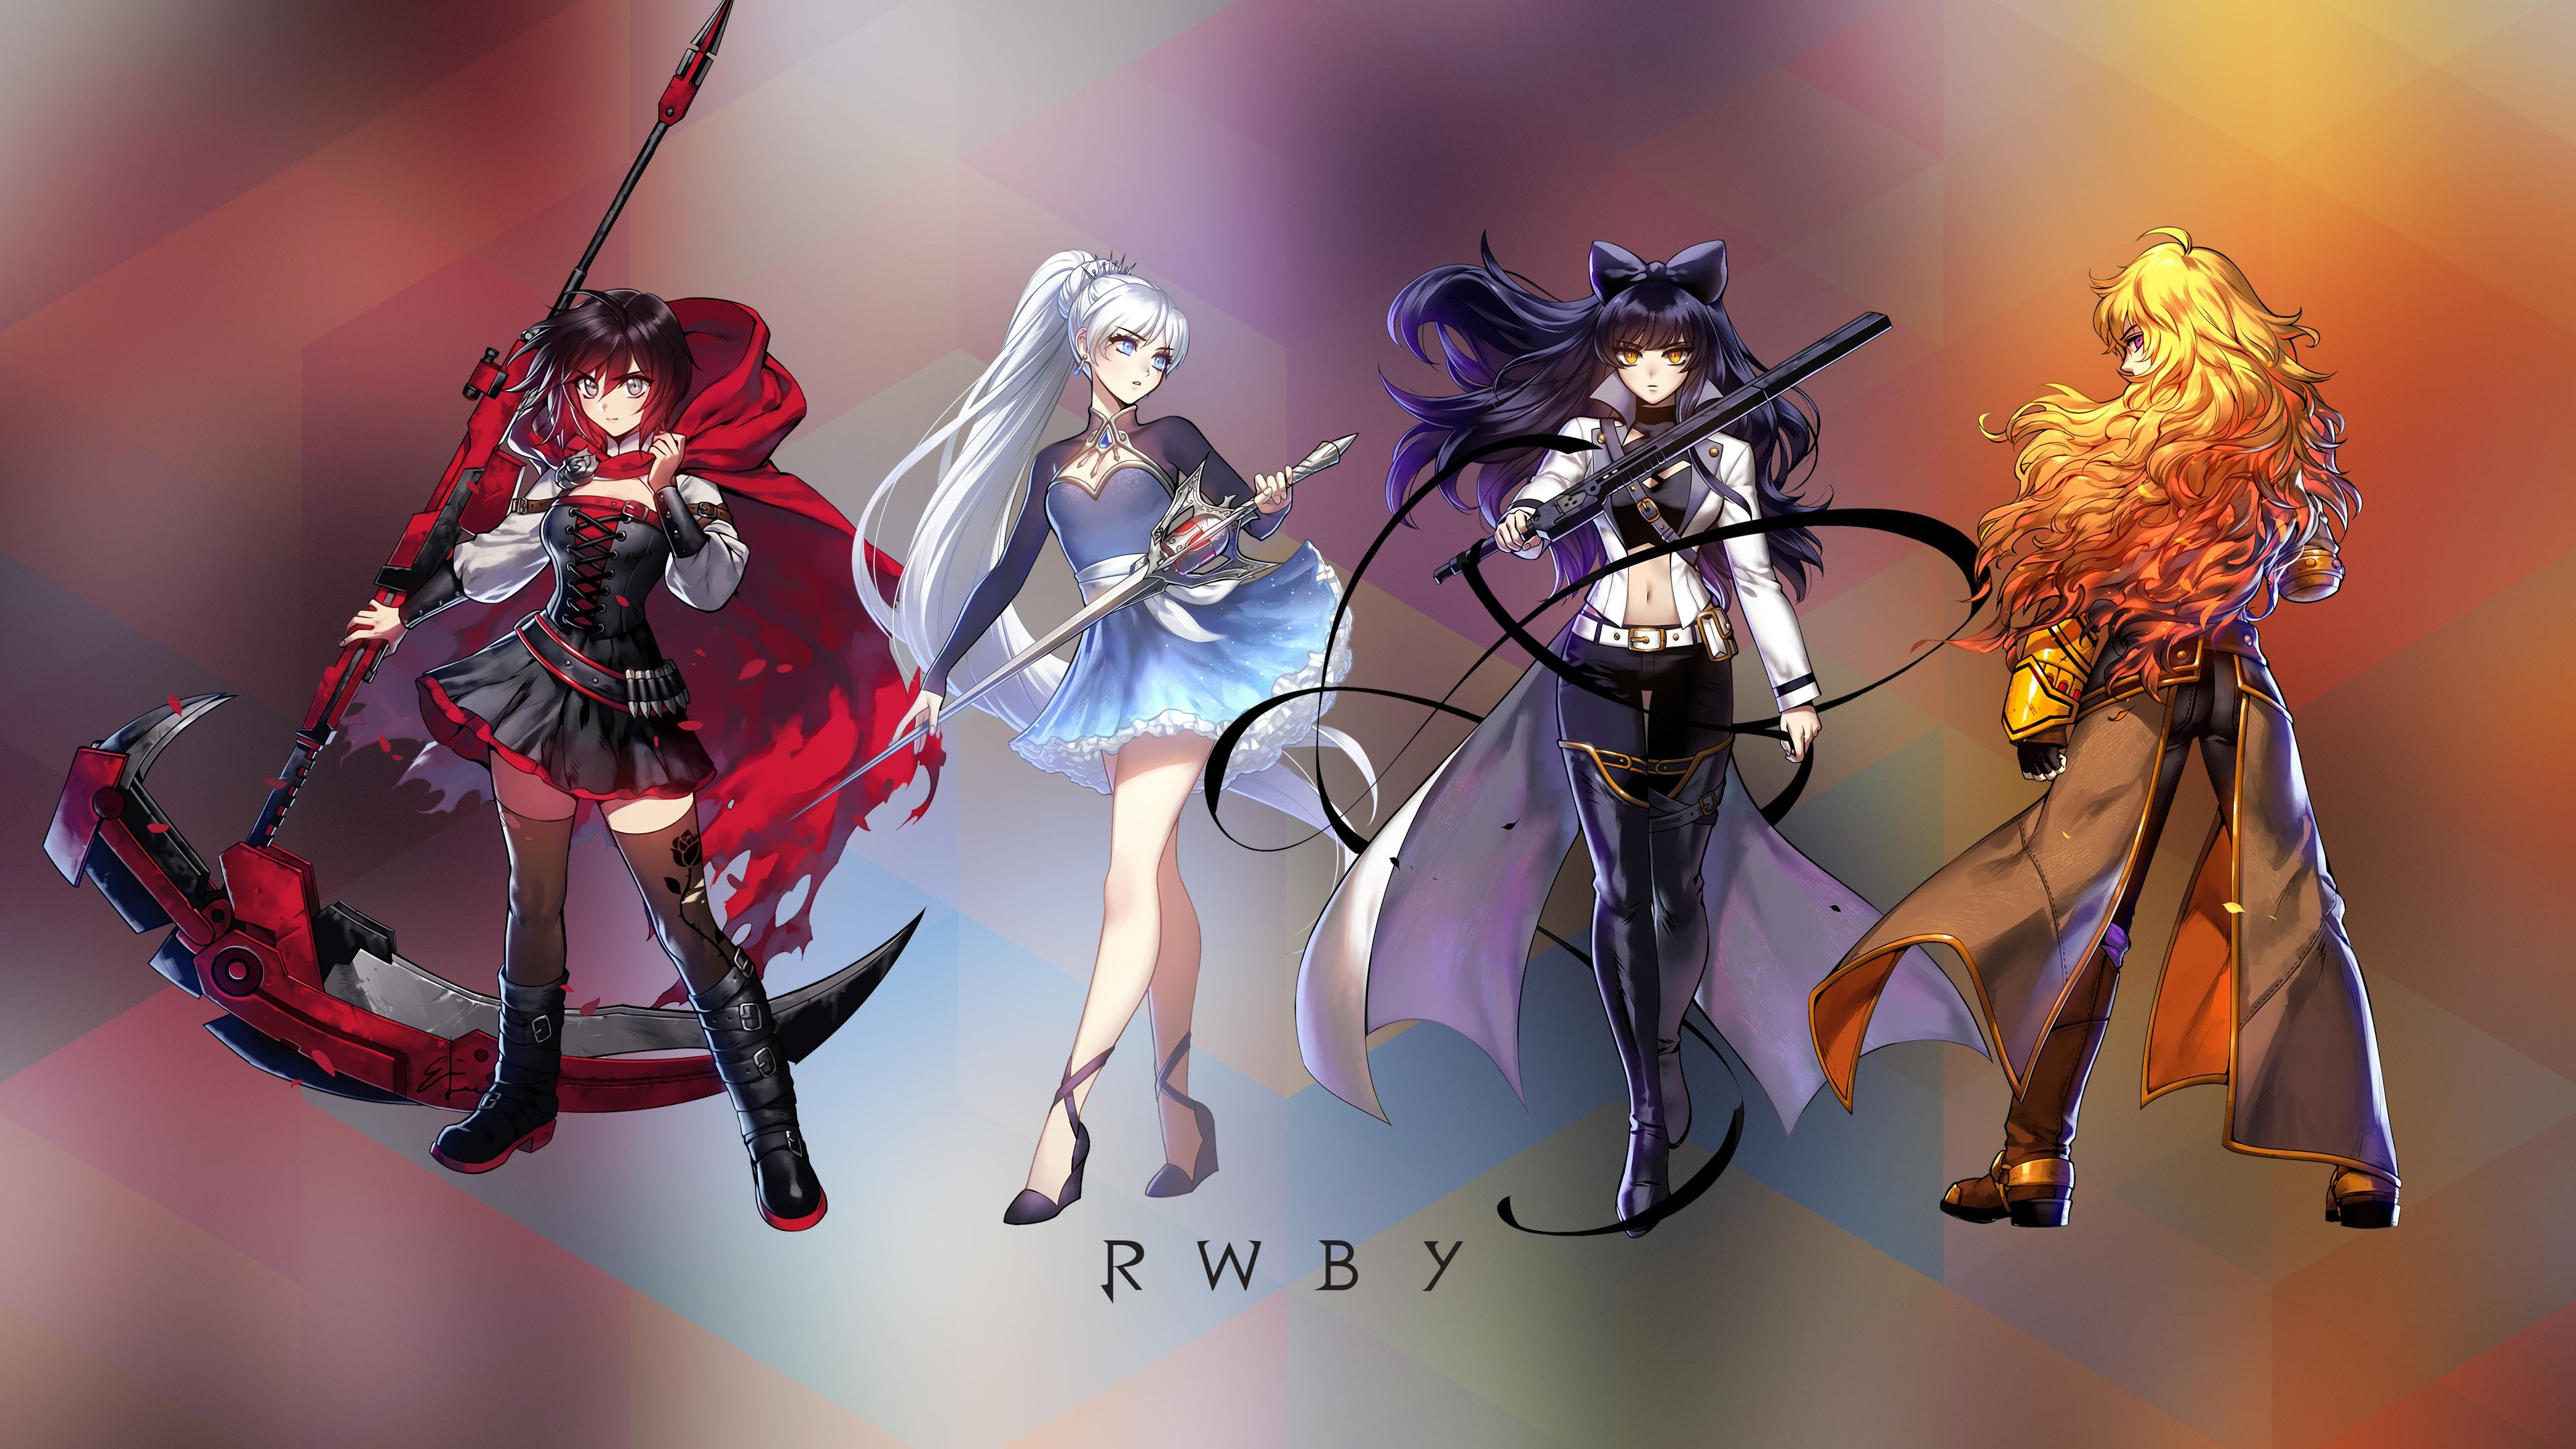 Res: 3840x2160, MISCELLANEOUS4K UHD RWBY wallpaper original art by Rooster Teeth's Ein Lee  ...